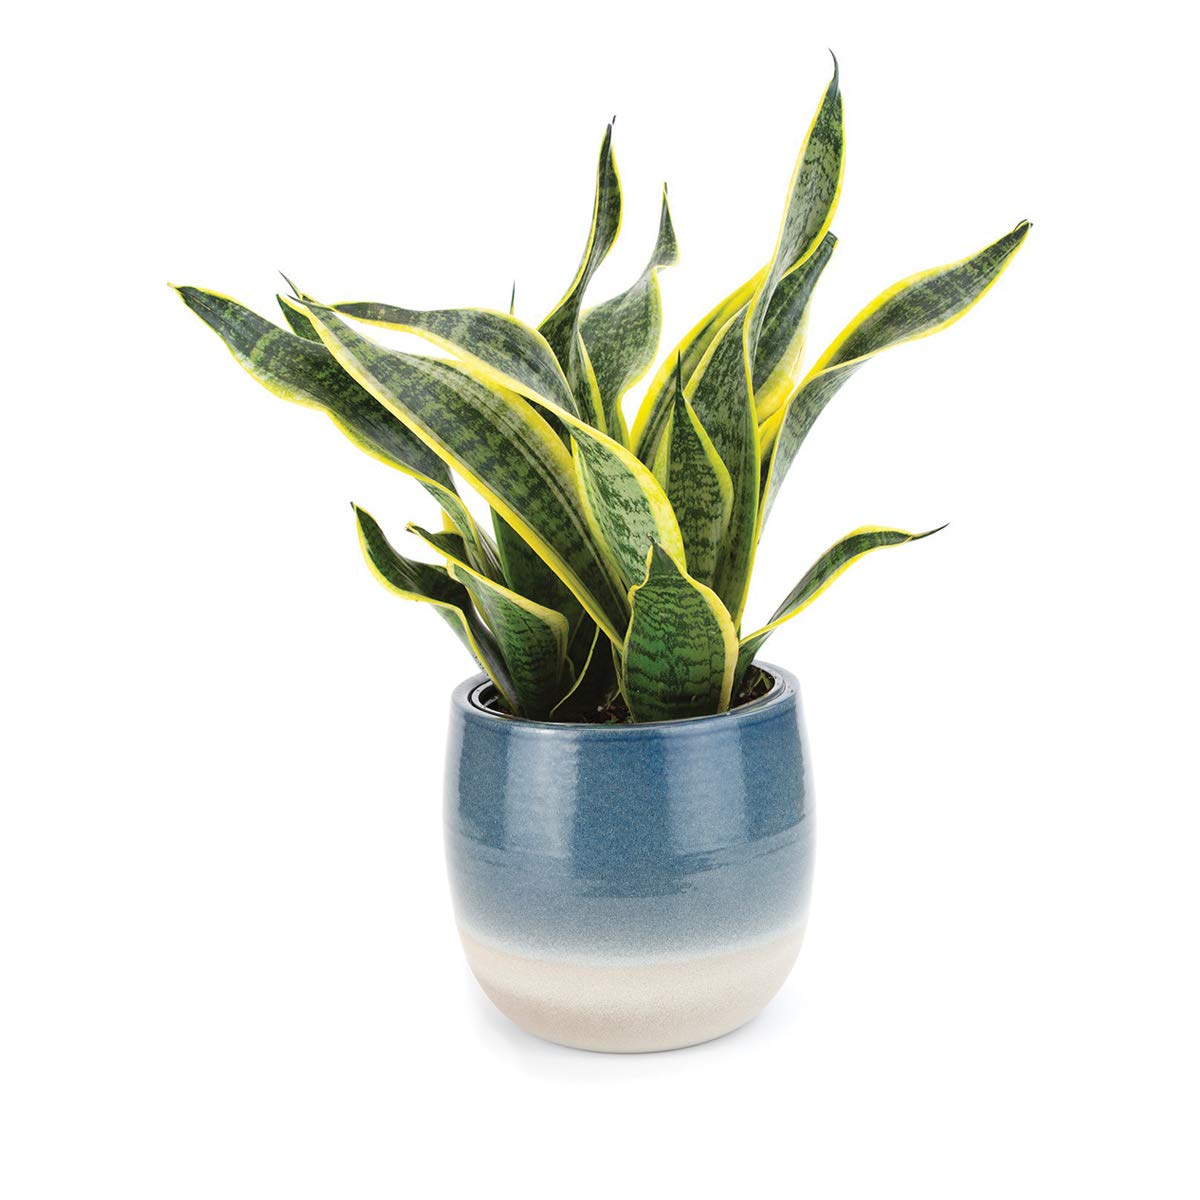 Burpee Golden Snake Plant with with 6'' Decorative Waterproof Ceramic Pot | Indirect Low - Light, Live Easy Care House